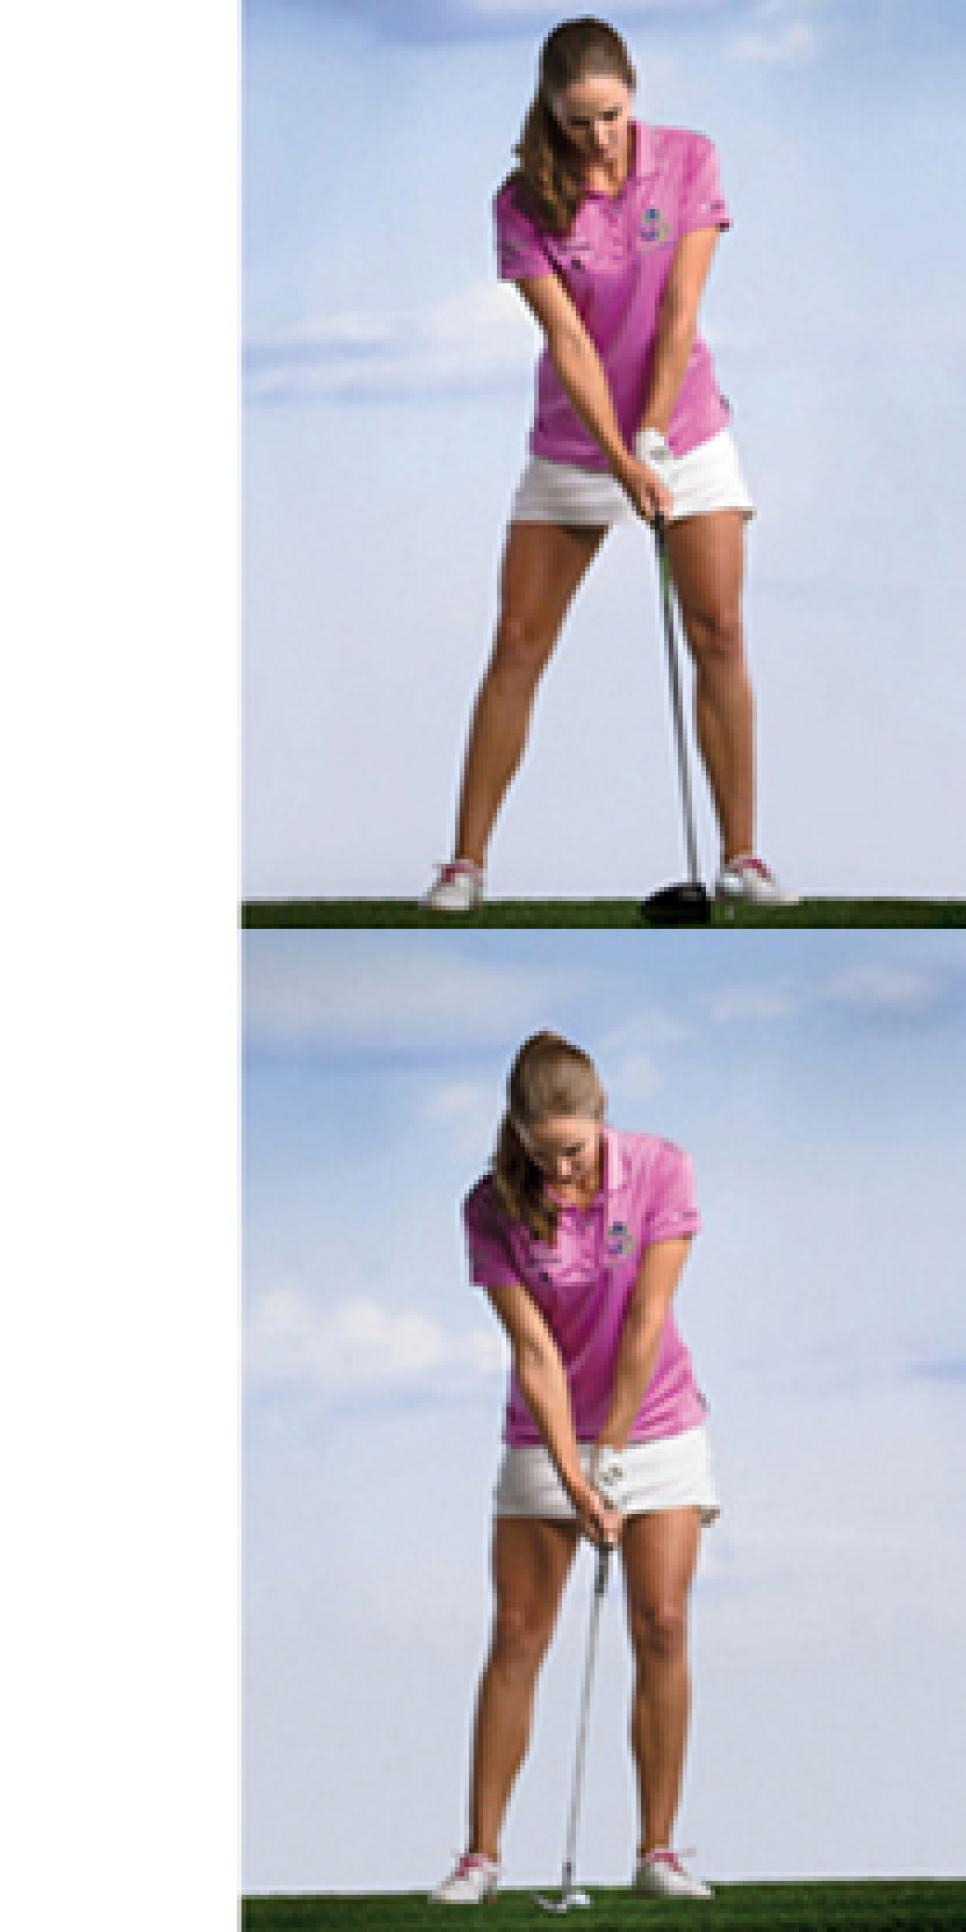 instruction-2014-09-inar01-driver-wedge.jpg